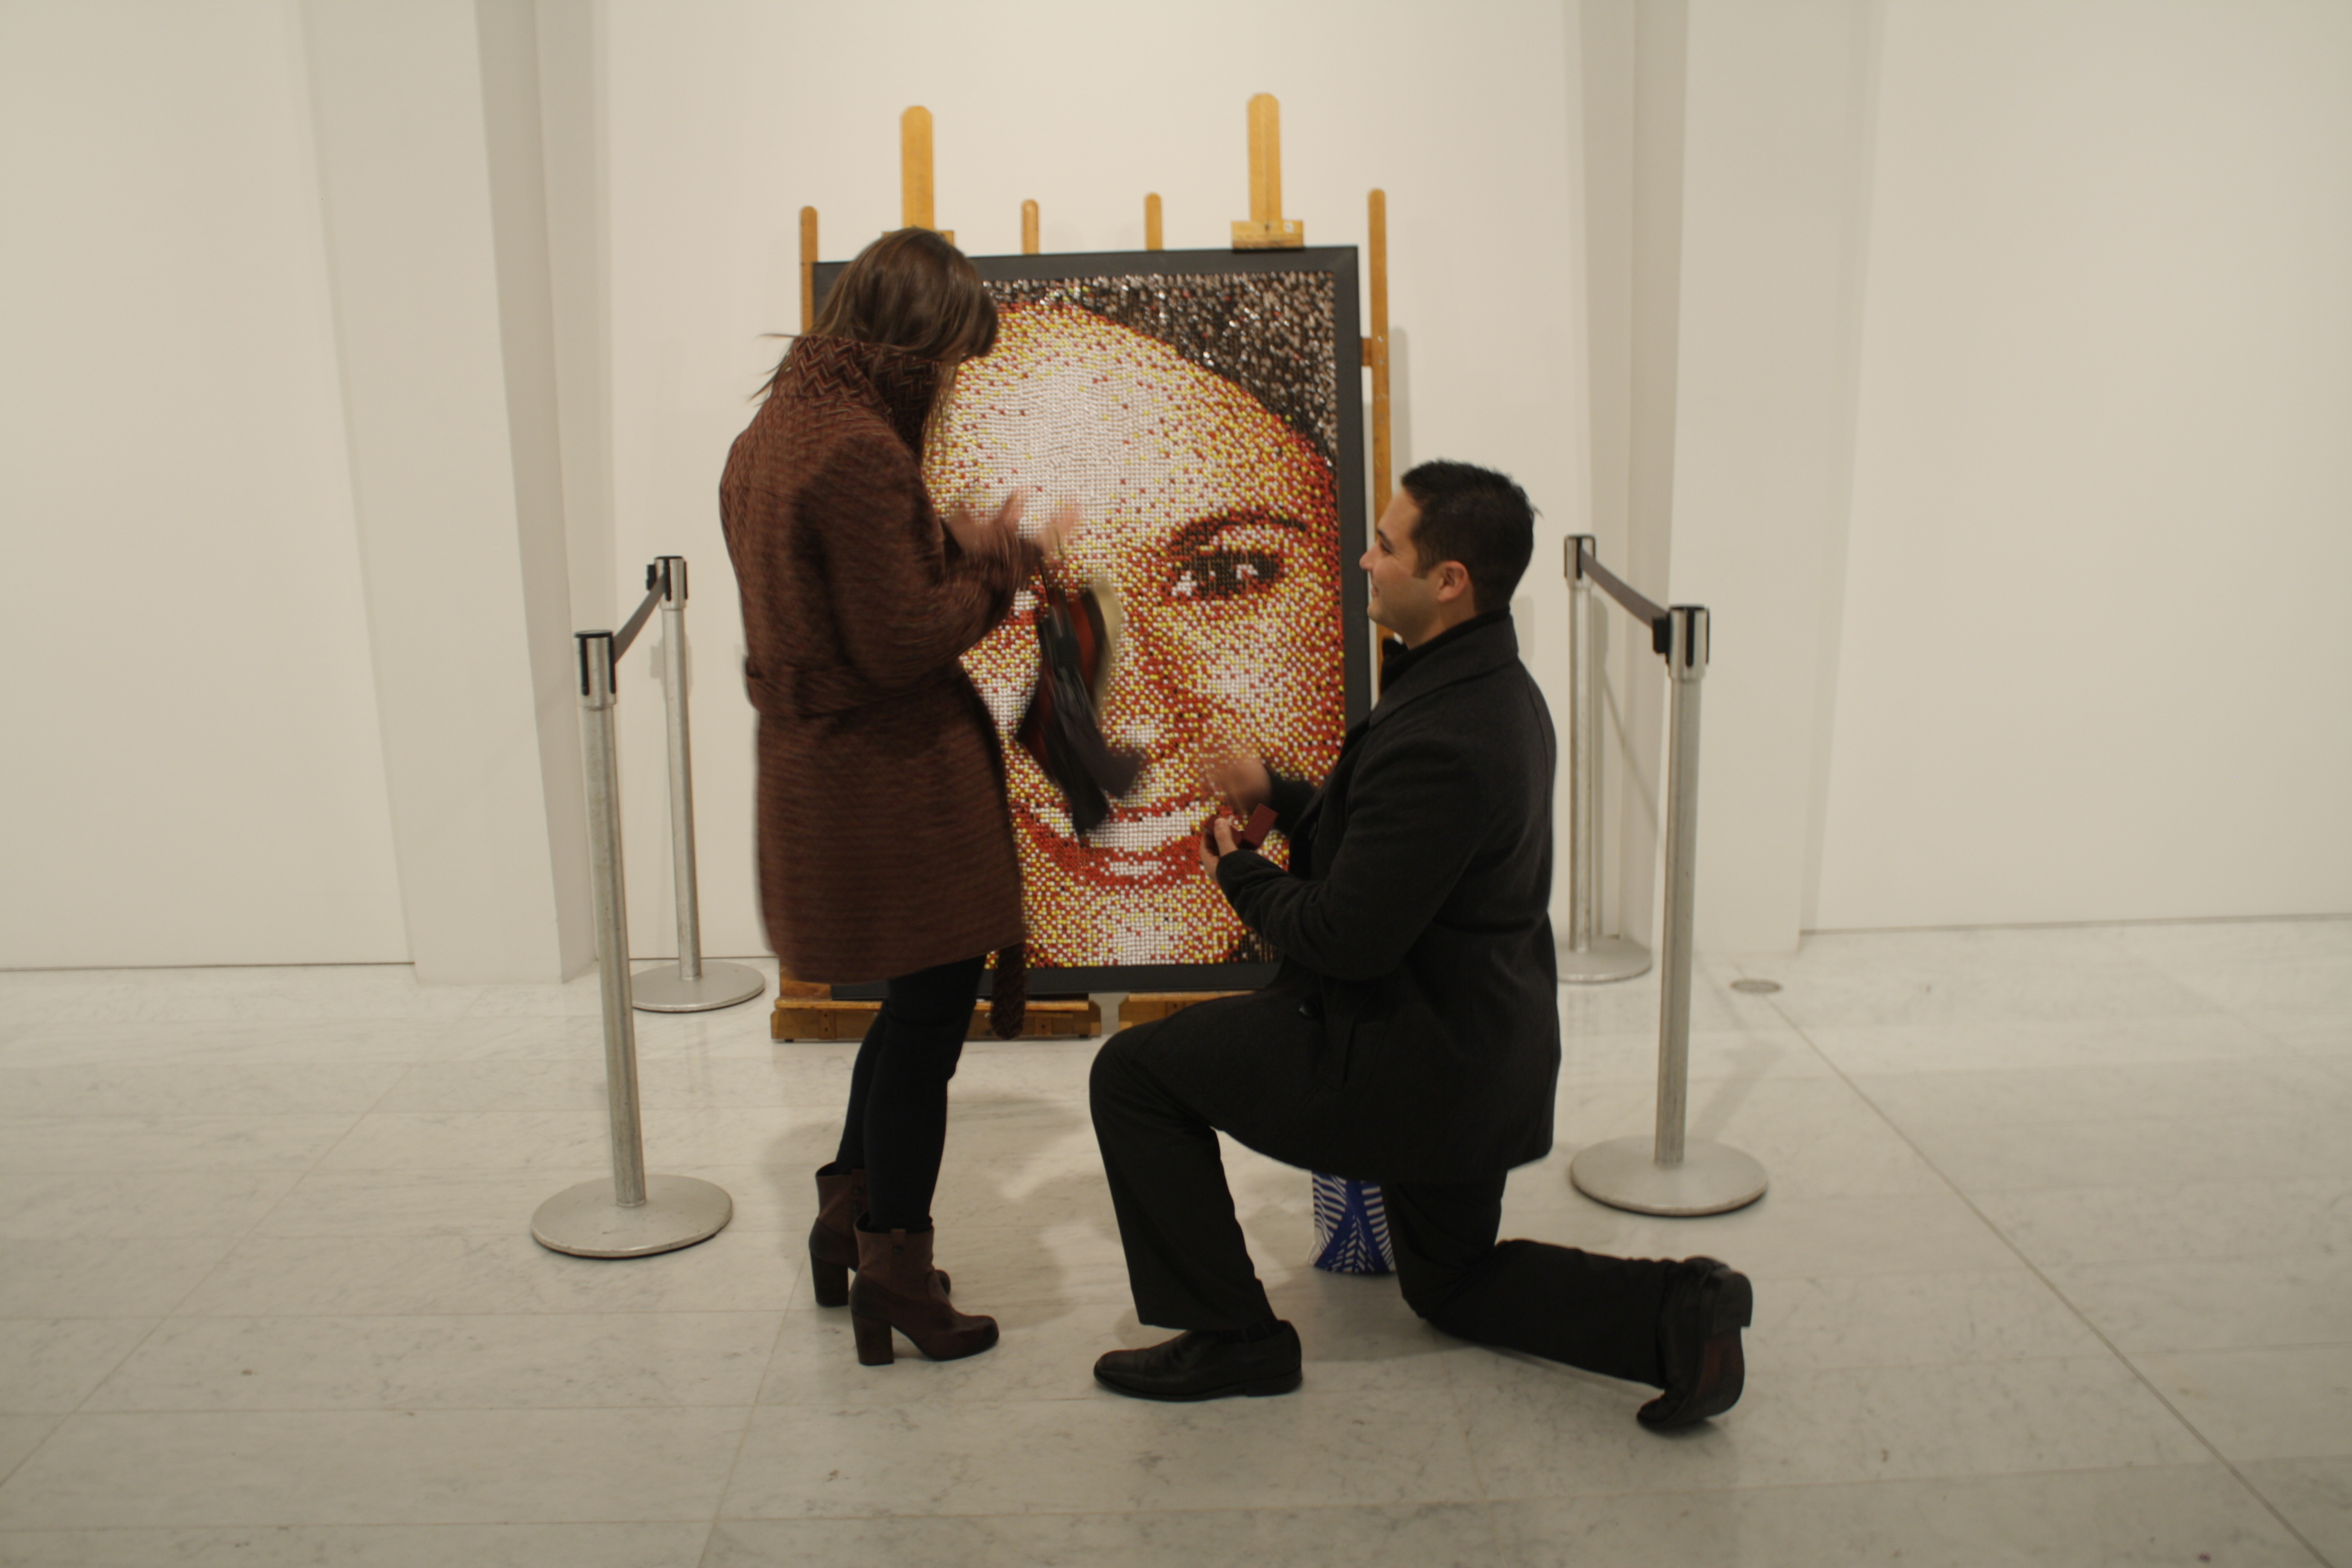 Image 3 of Push Pin Portrait Marriage Proposal